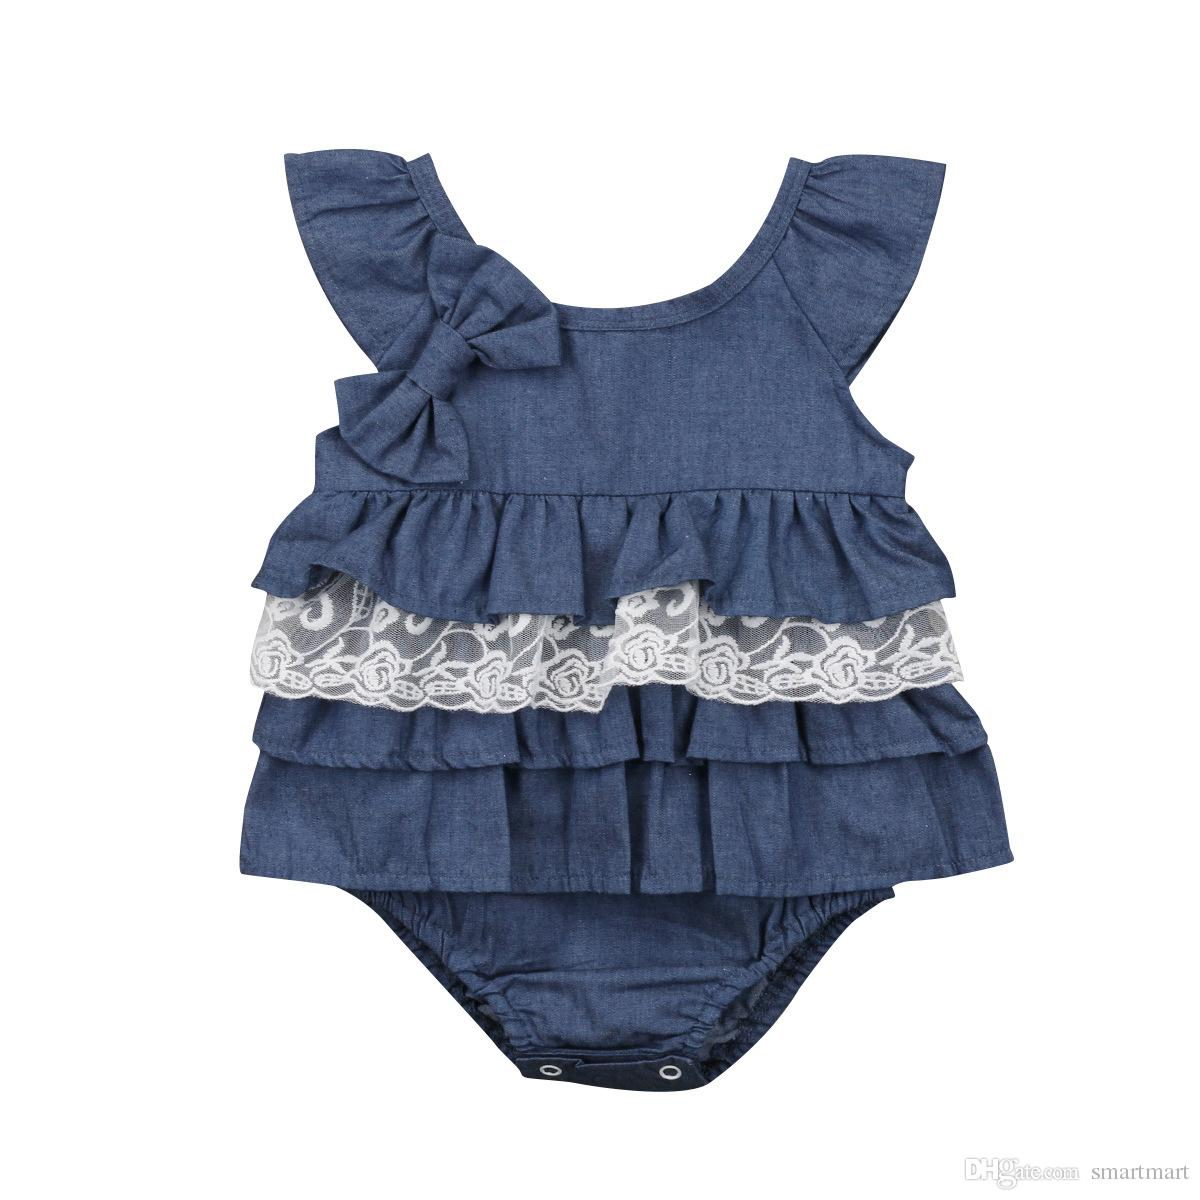 a0e968a465a6 2019 Everweekend Ins Fashion Baby Girls Denim Ruffles Rompers Summer  Vintage Lace Ruffles Cute Toddler Kids Clothing From Smartmart